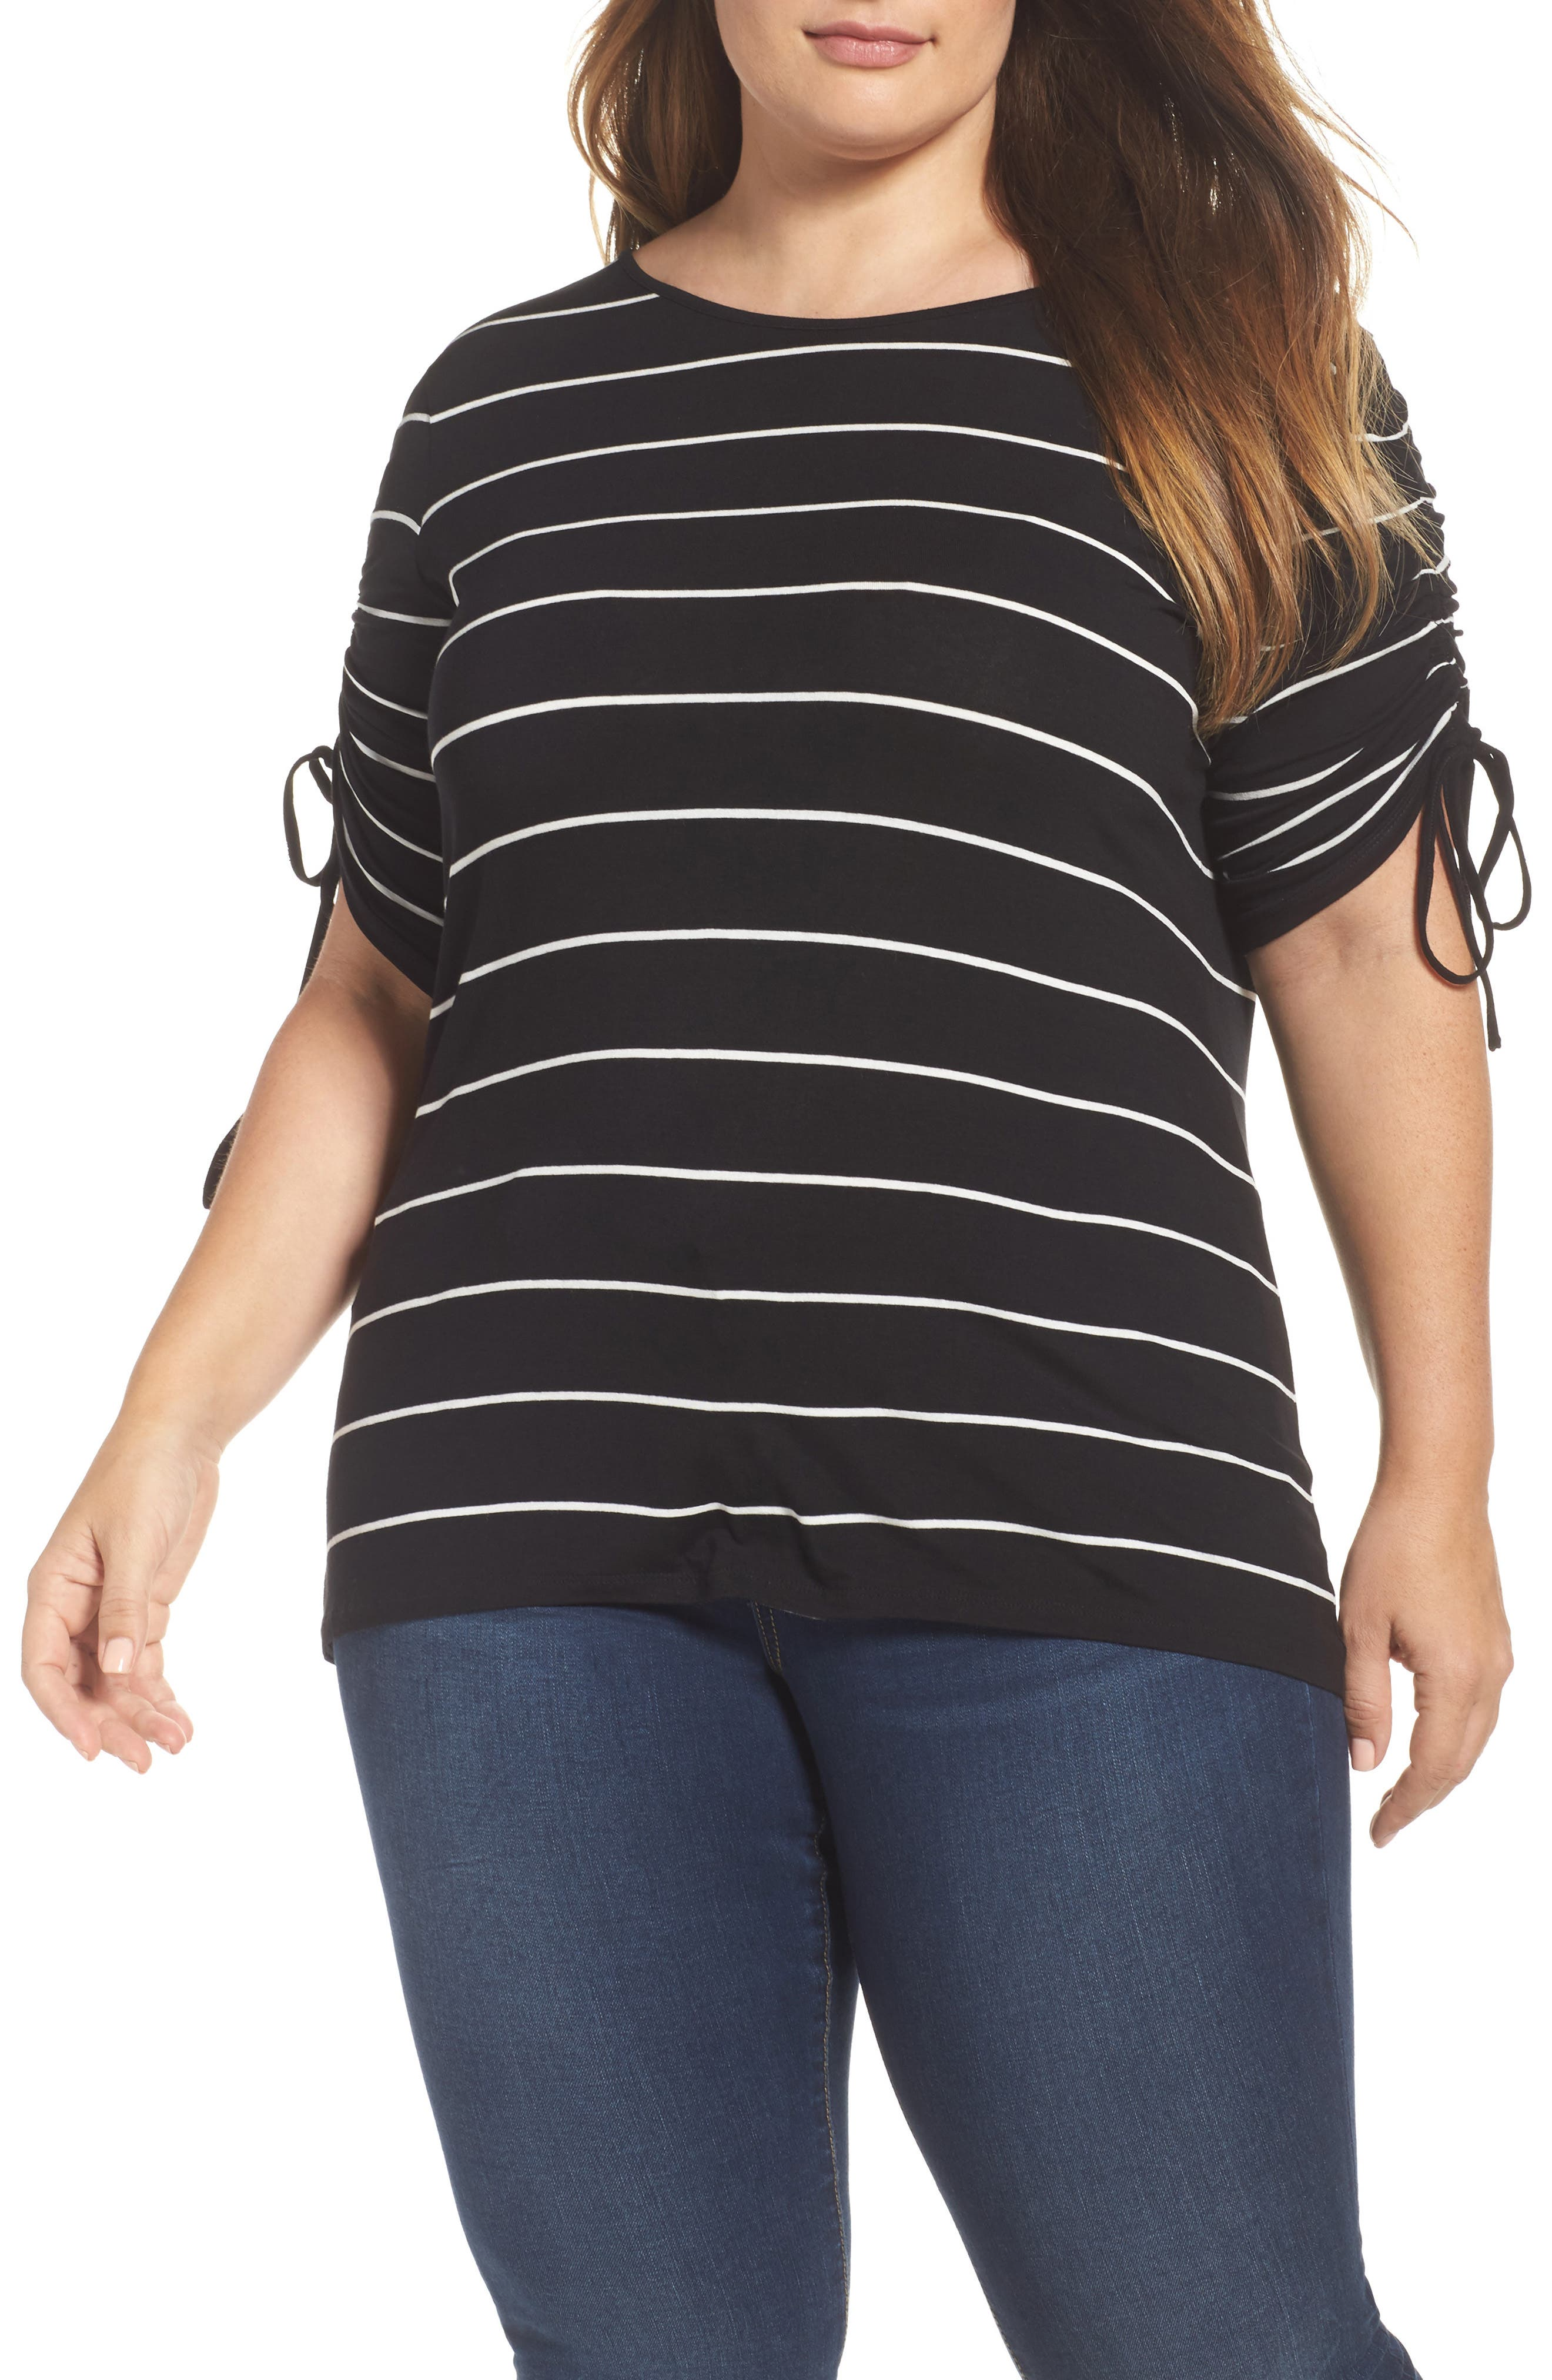 Vince Camuto Drawstring Sleeve Stripe Top (Plus Size)